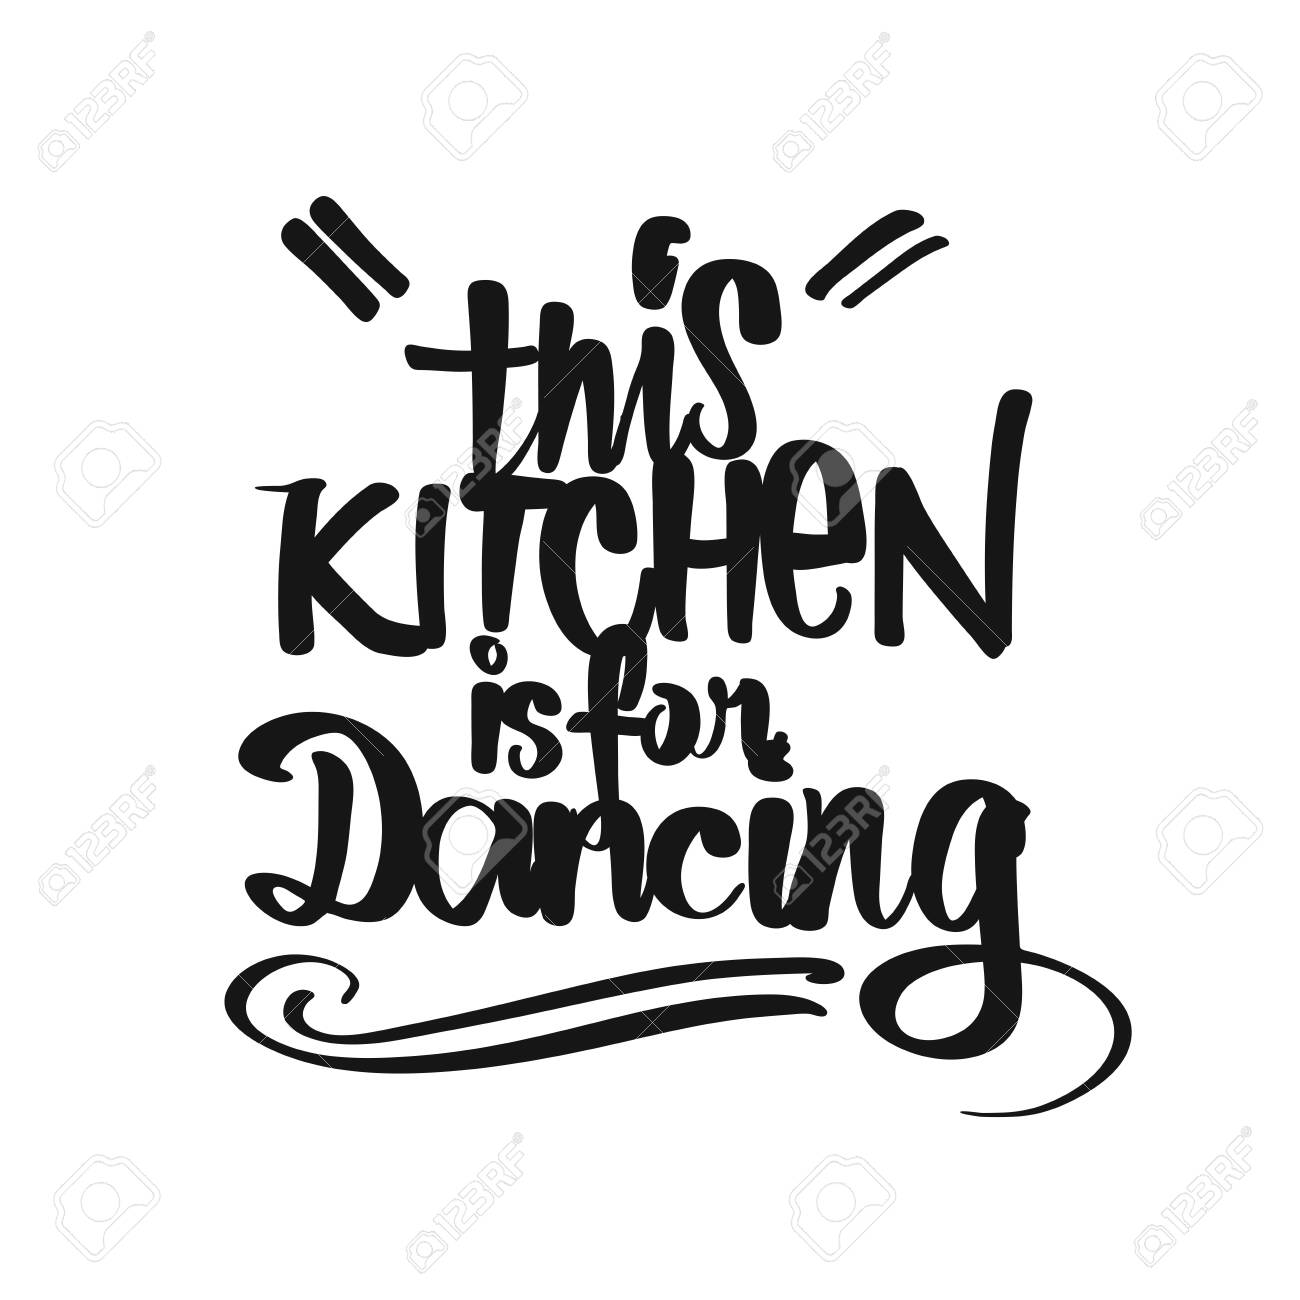 photo relating to Printable Kitchen Art called This Kitchen area Is For Dancing handwritten lettering. Printable..